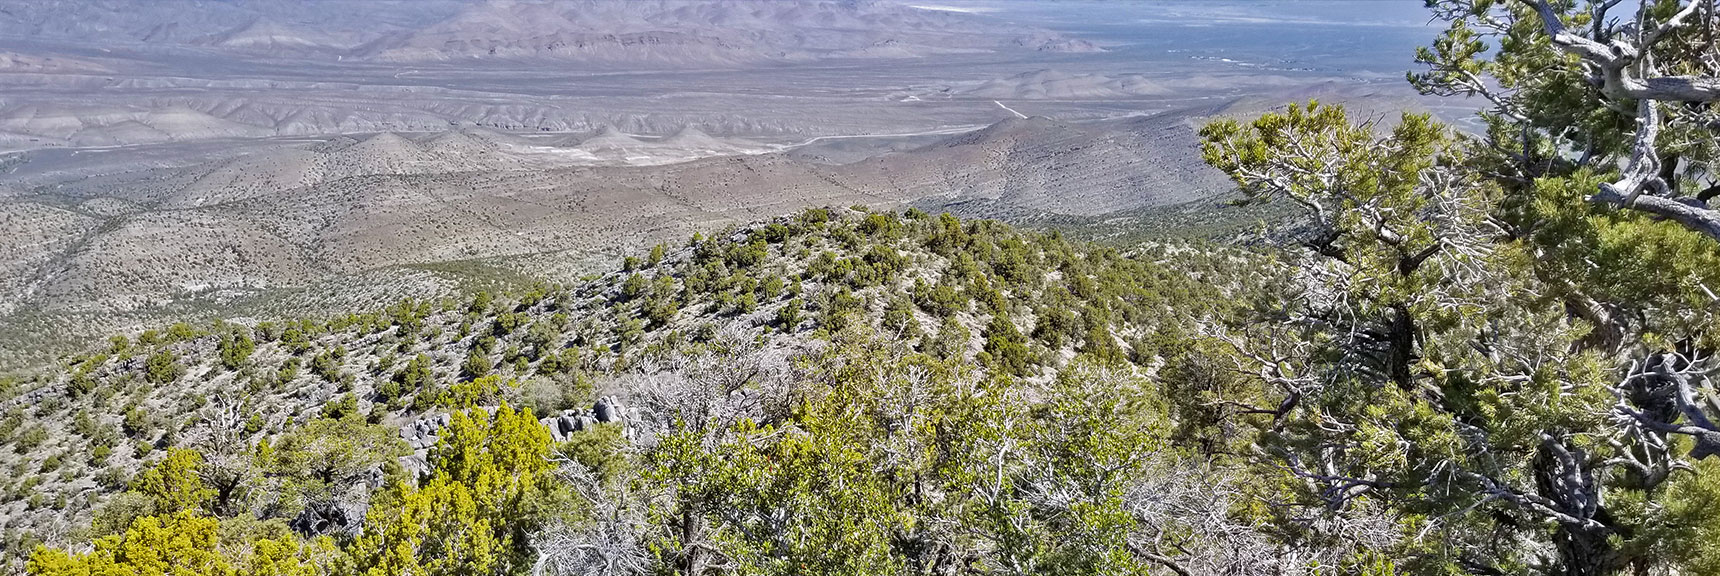 View to Origin Point at Intersection of Kyle Canyon & Harris Springs Rd from La Madre Mountain Nevada Northern Approach and High Points